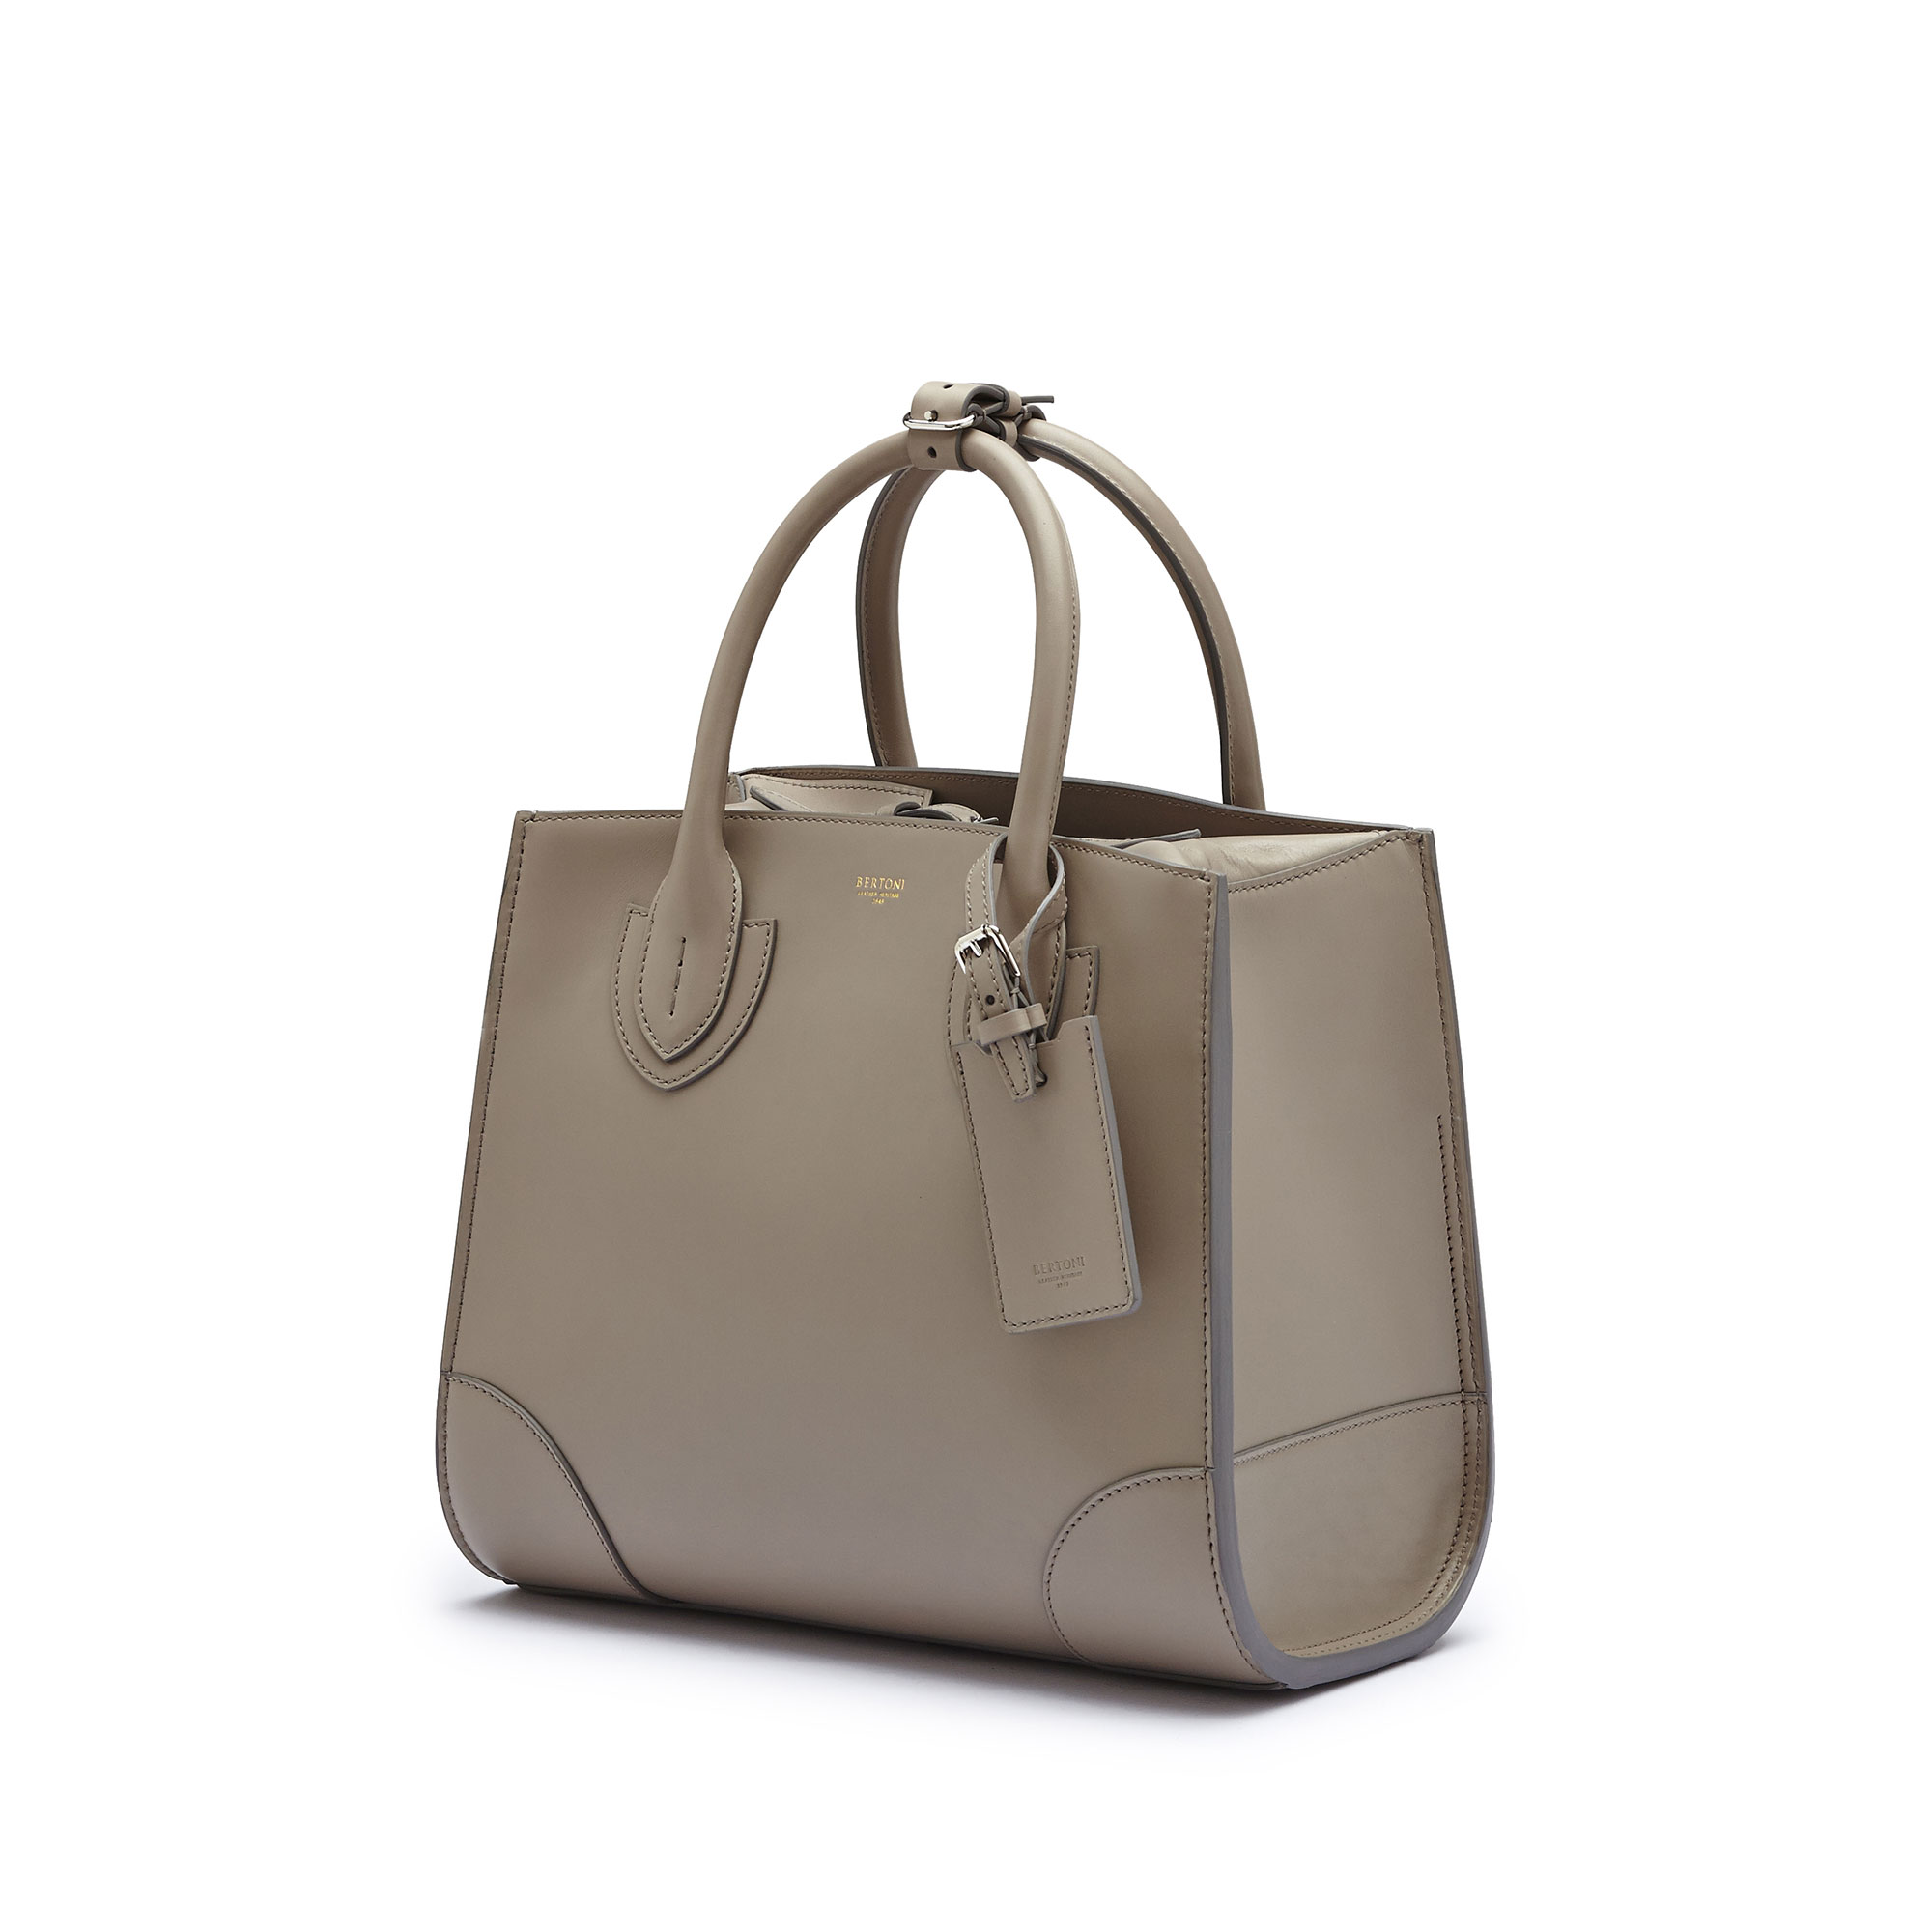 The taupe french calf Darcy medium bag by Bertoni 1949 03